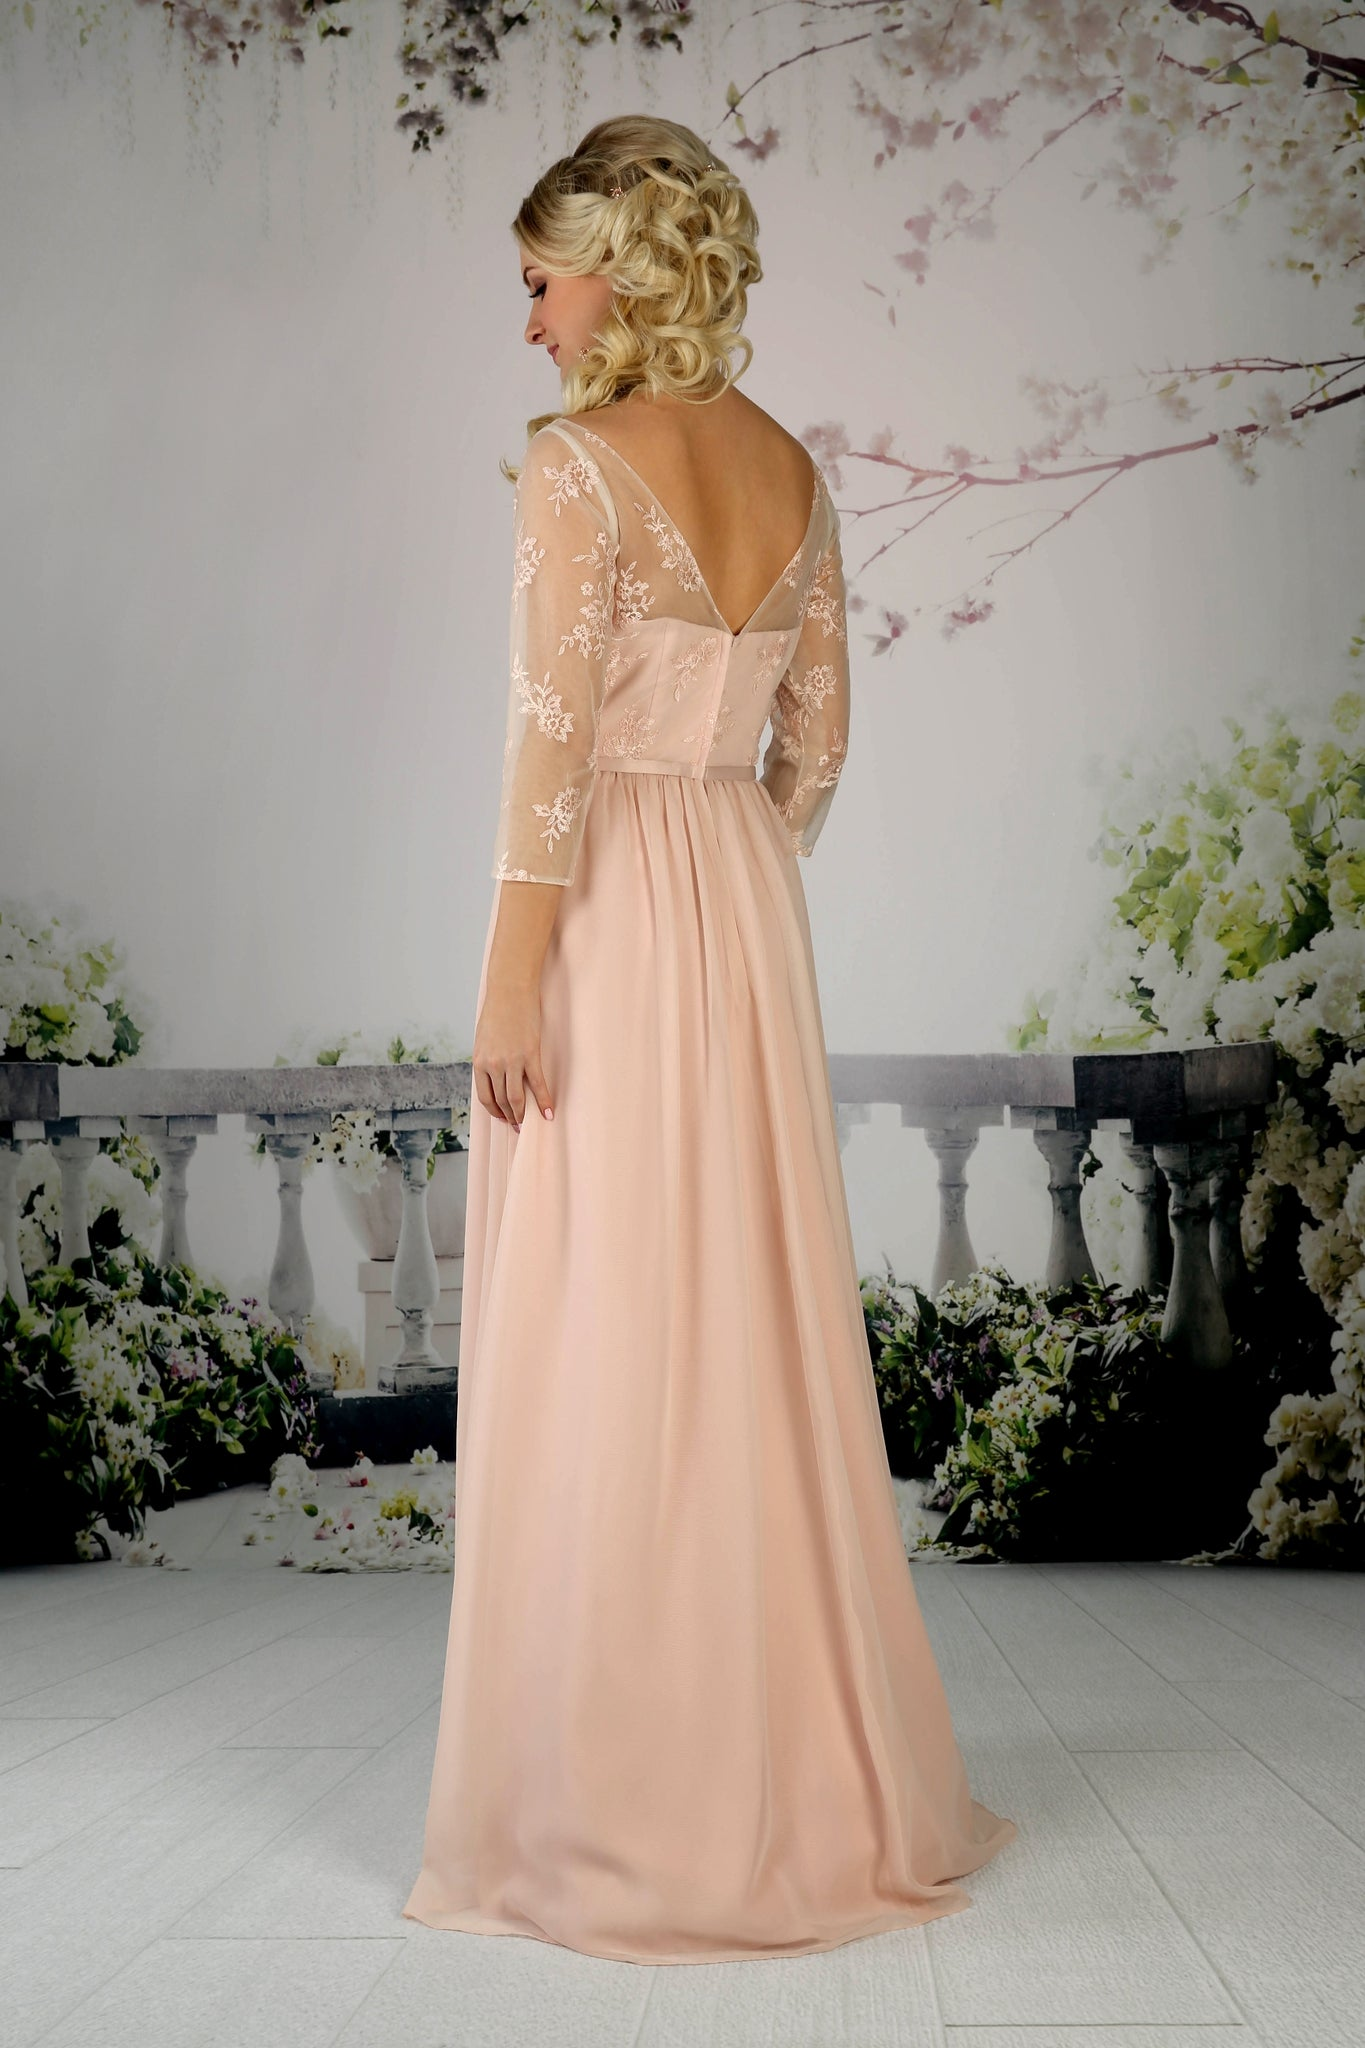 Pretty dress with a gathered chiffon skirt and embroidered lace bodice from the Emma Bridals collection